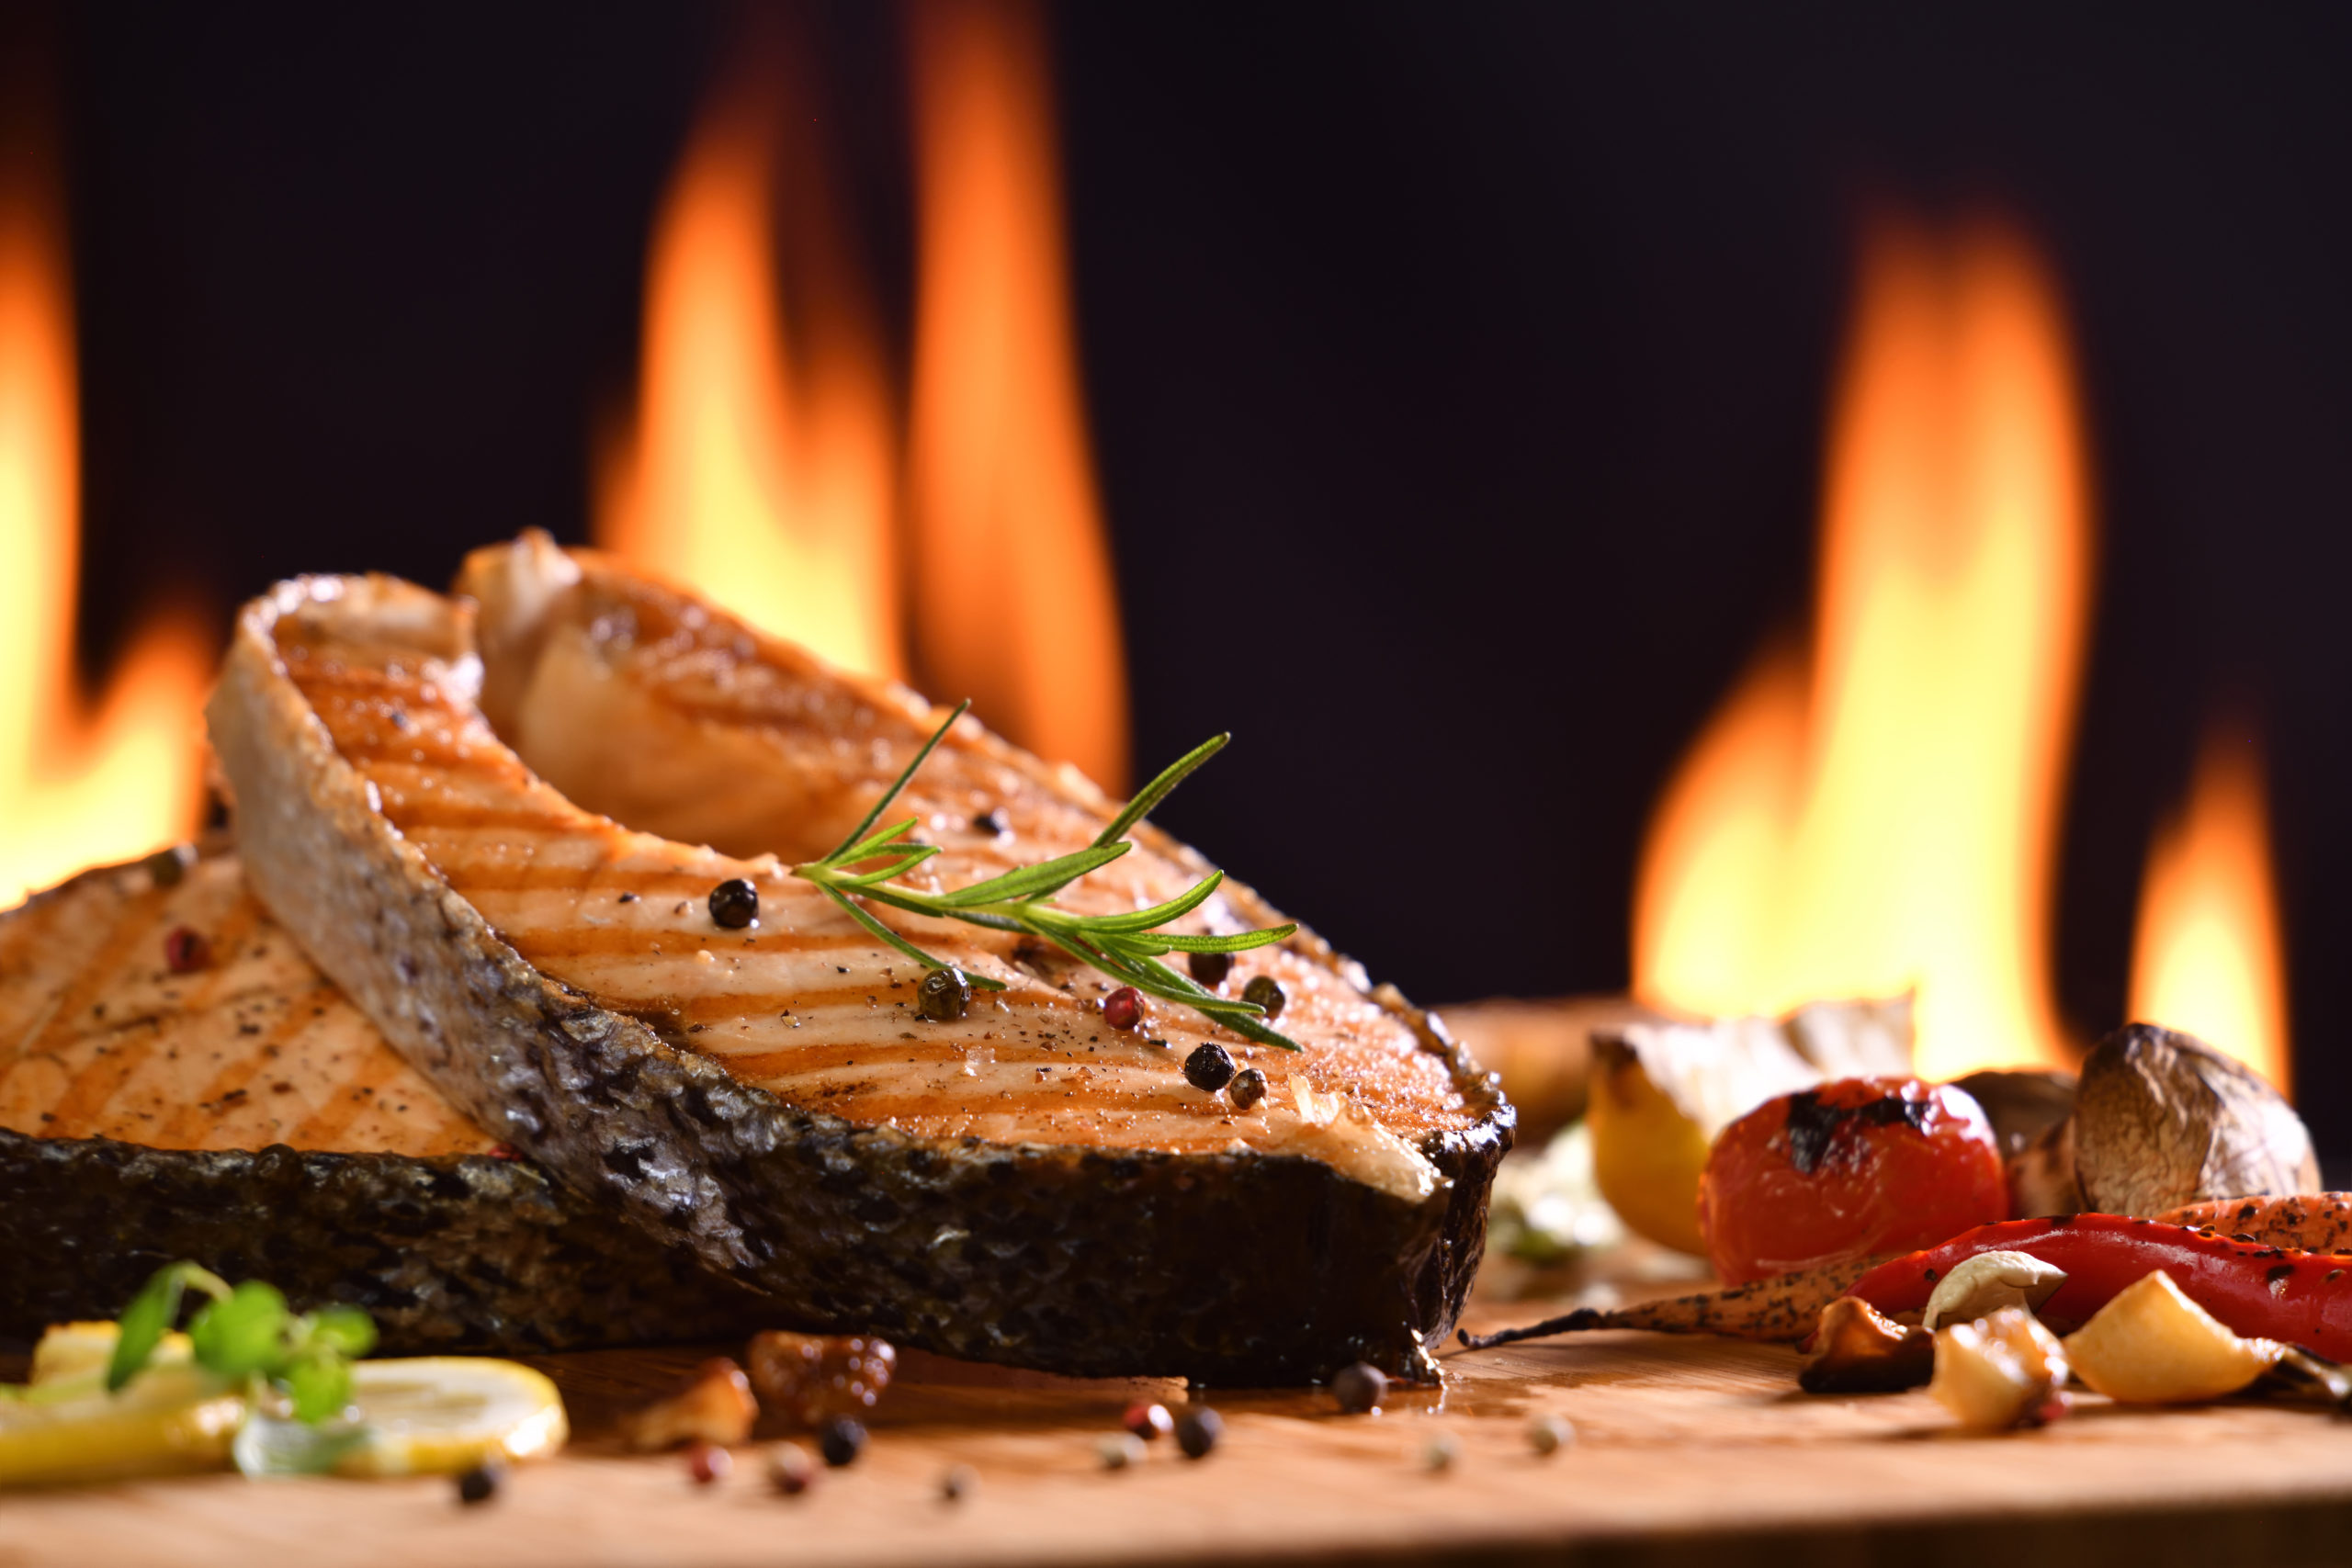 Grilled salmon fish and various vegetables on wooden table background